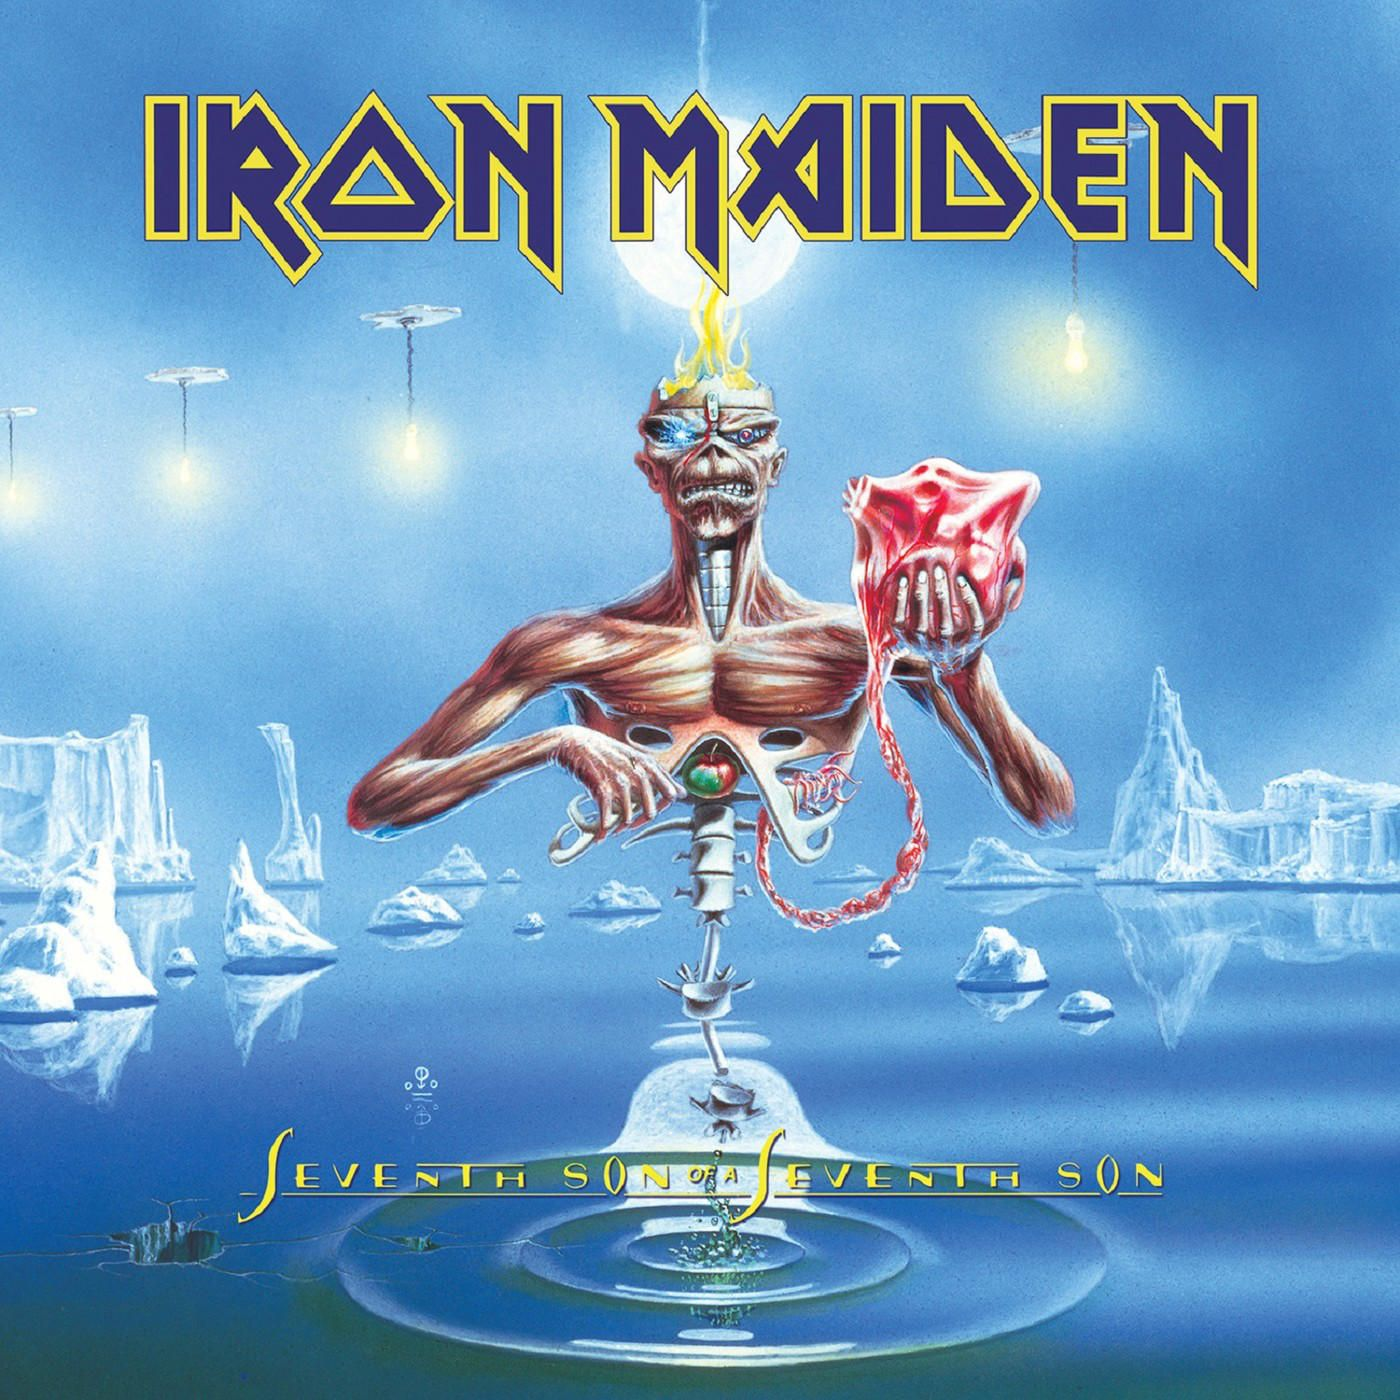 Iron Maiden - Seventh Son Of A Seventh Son album cover